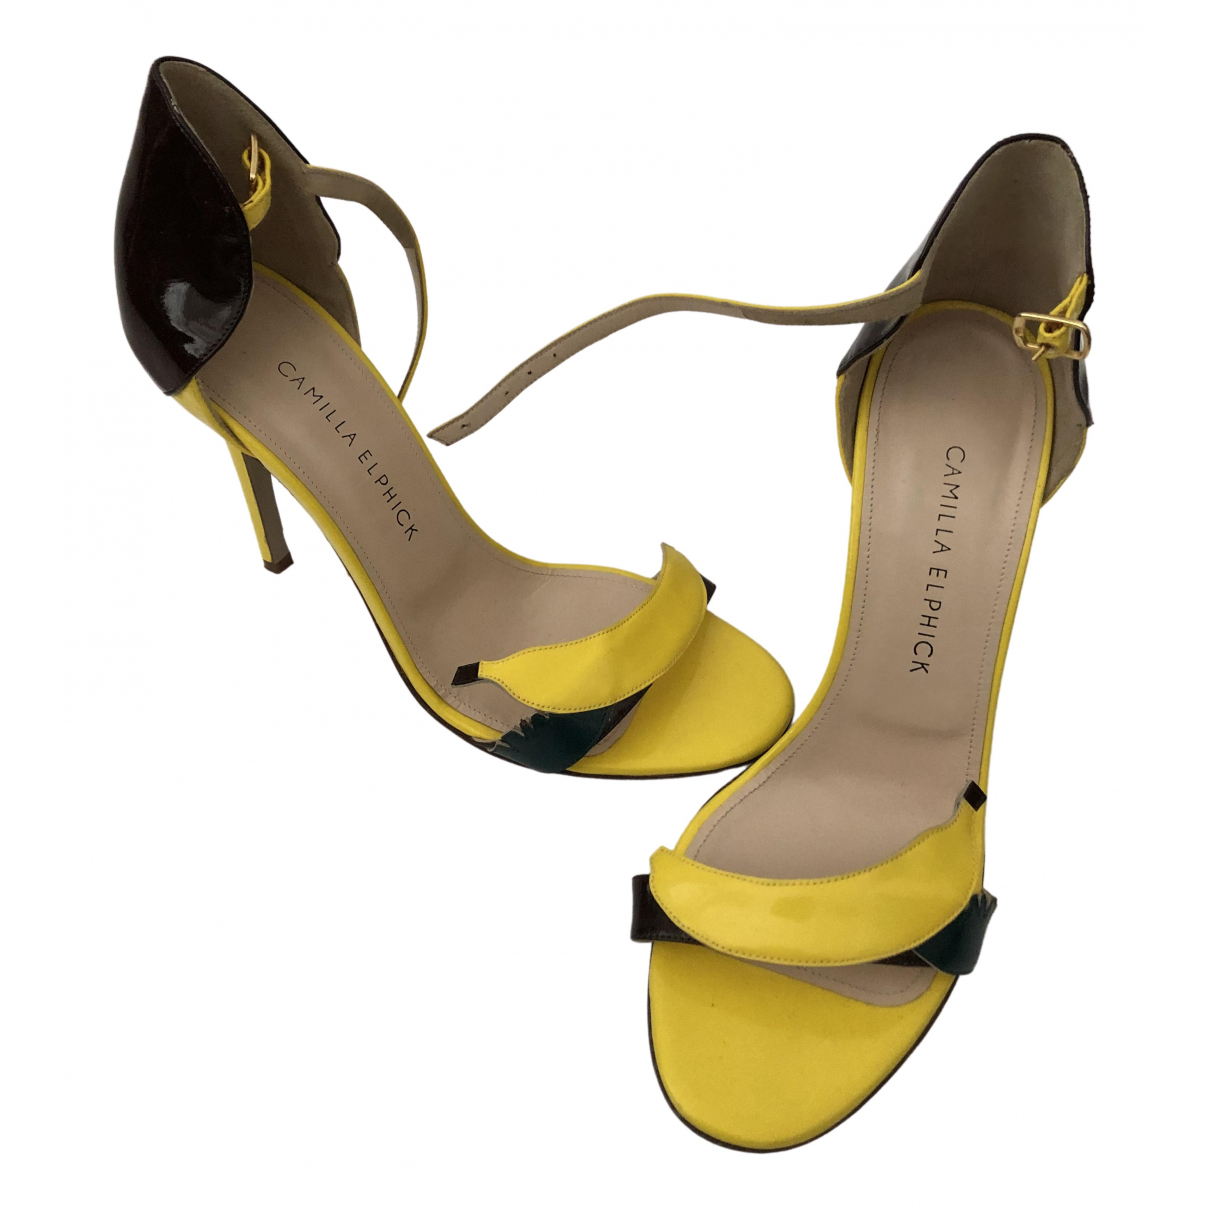 Camilla Elphick \N Yellow Patent leather Heels for Women 38 EU